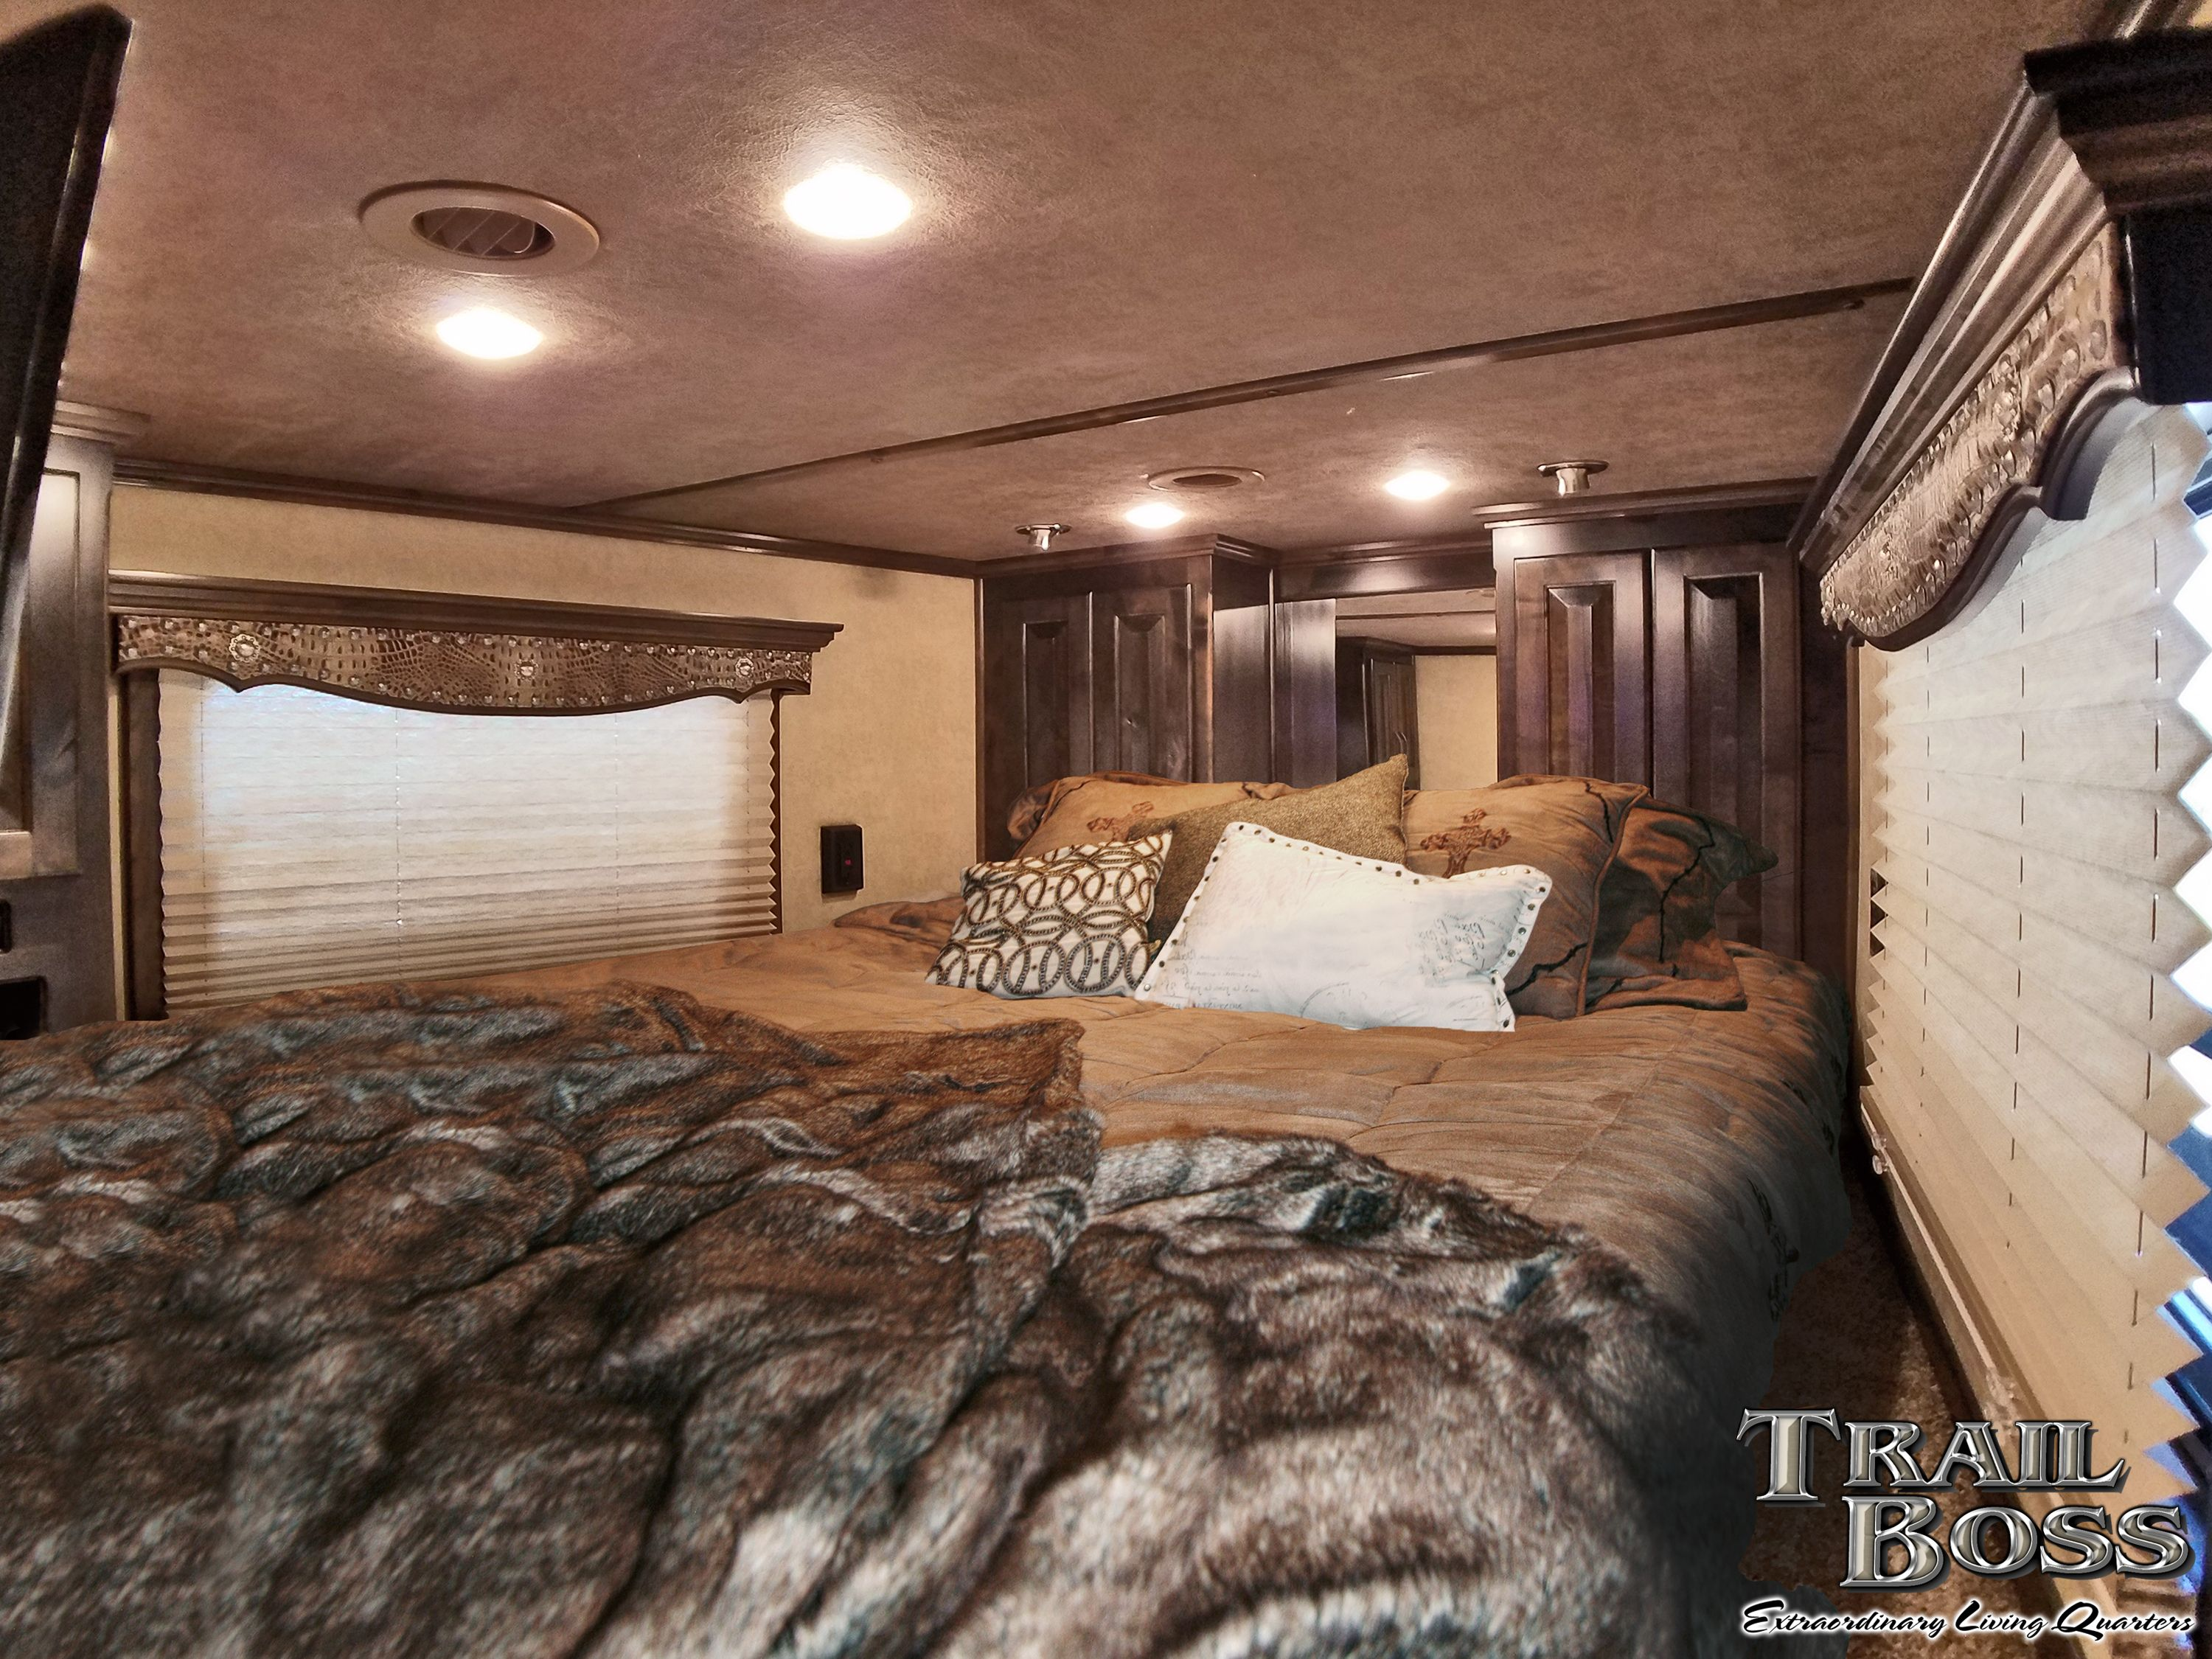 Trail Boss Living Quarters With Deluxe Leather Covered Valances And